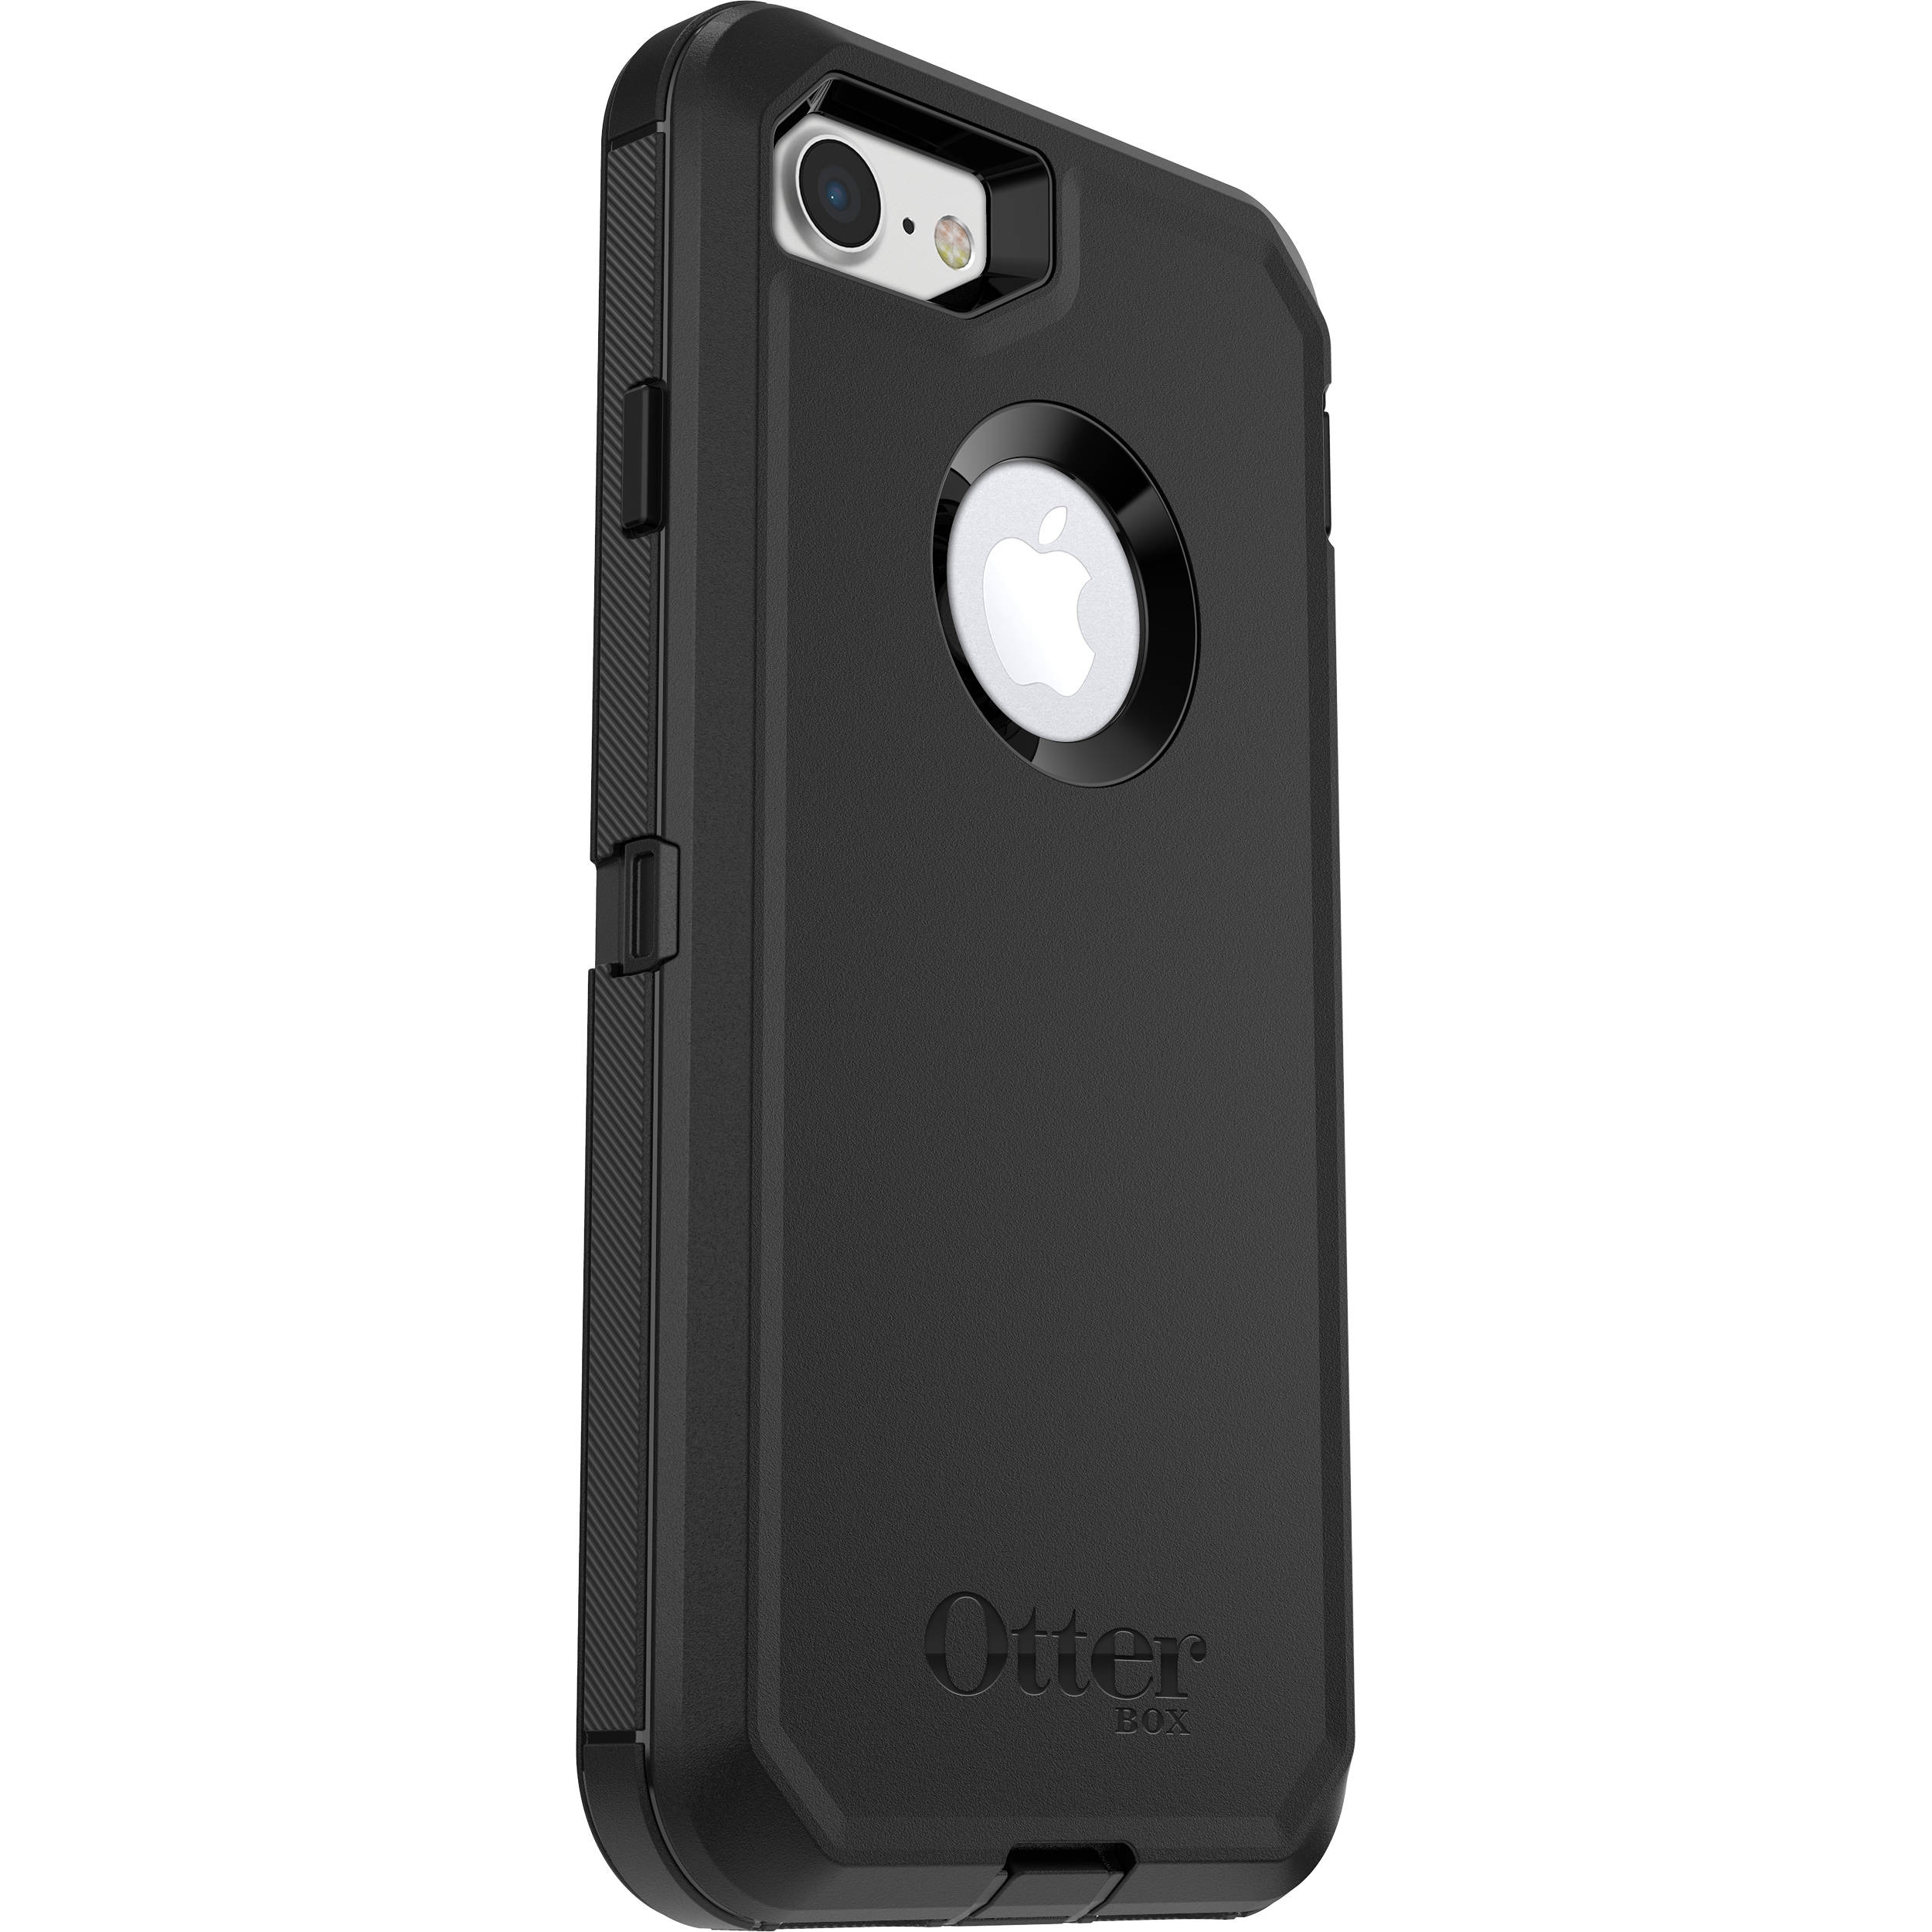 6c5d21c1a98 OtterBox Defender Series Case for iPhone 7/8 (Black) 77-56603